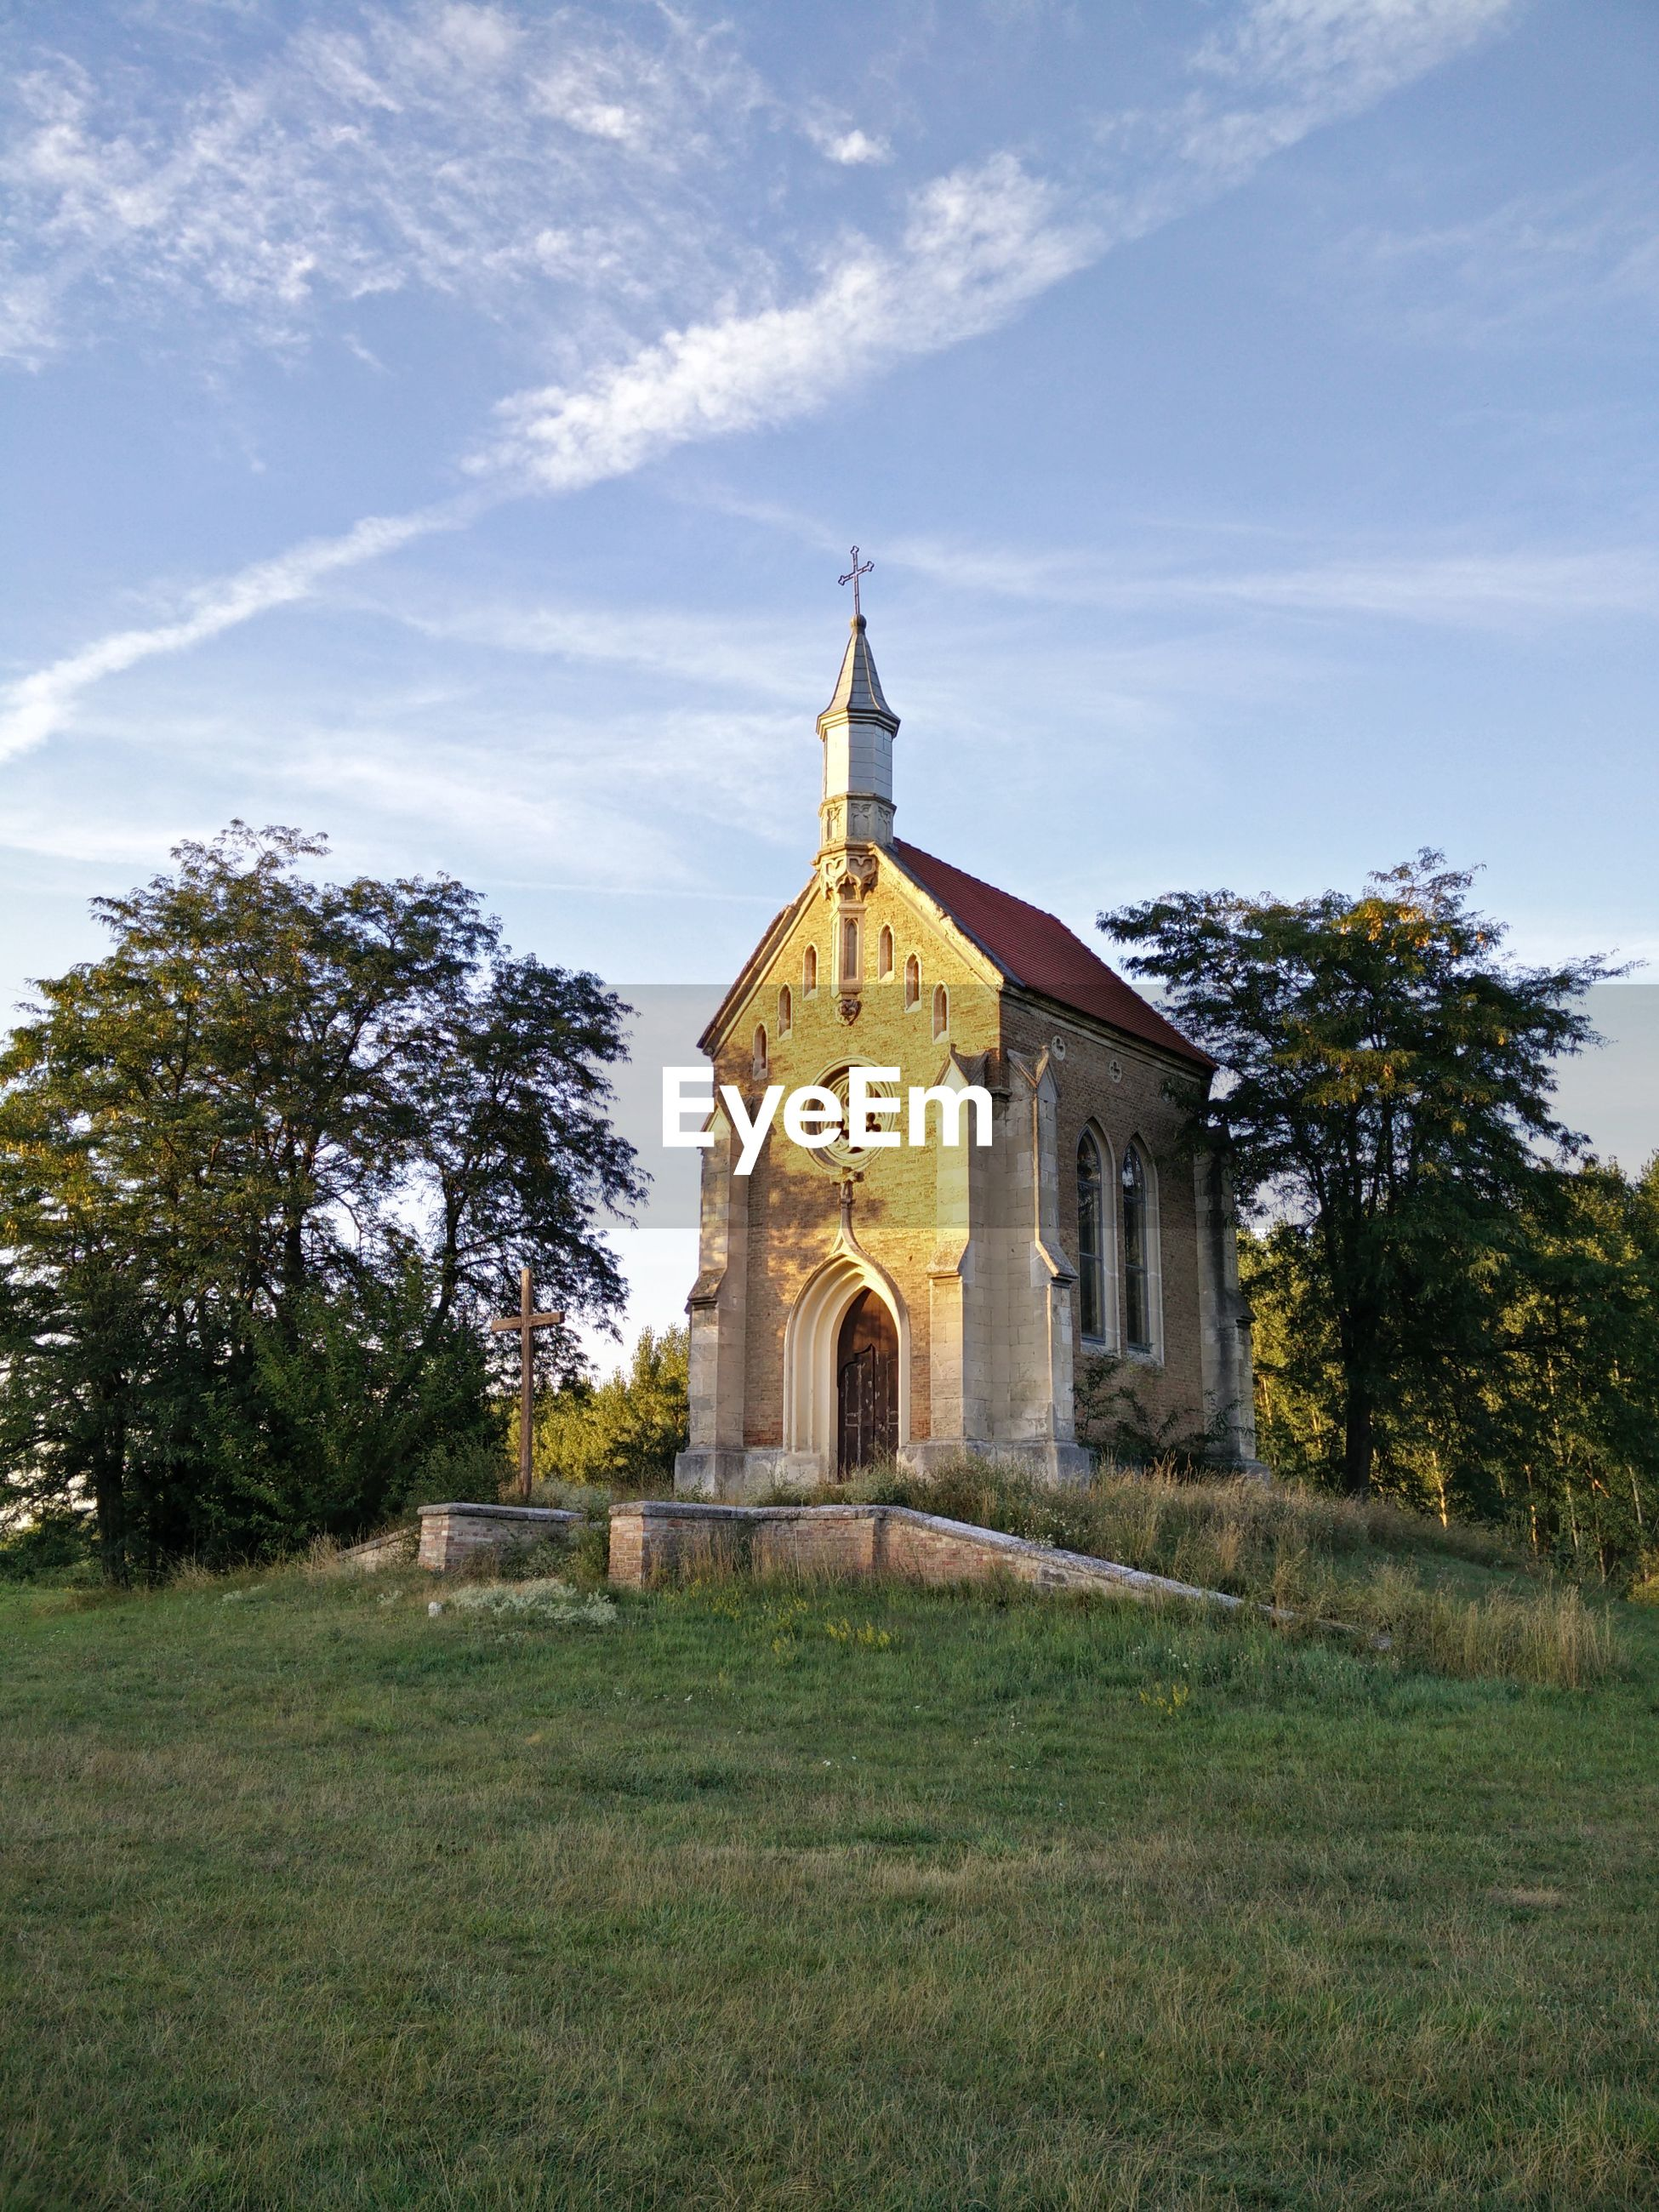 VIEW OF CHURCH WITH TREES IN BACKGROUND